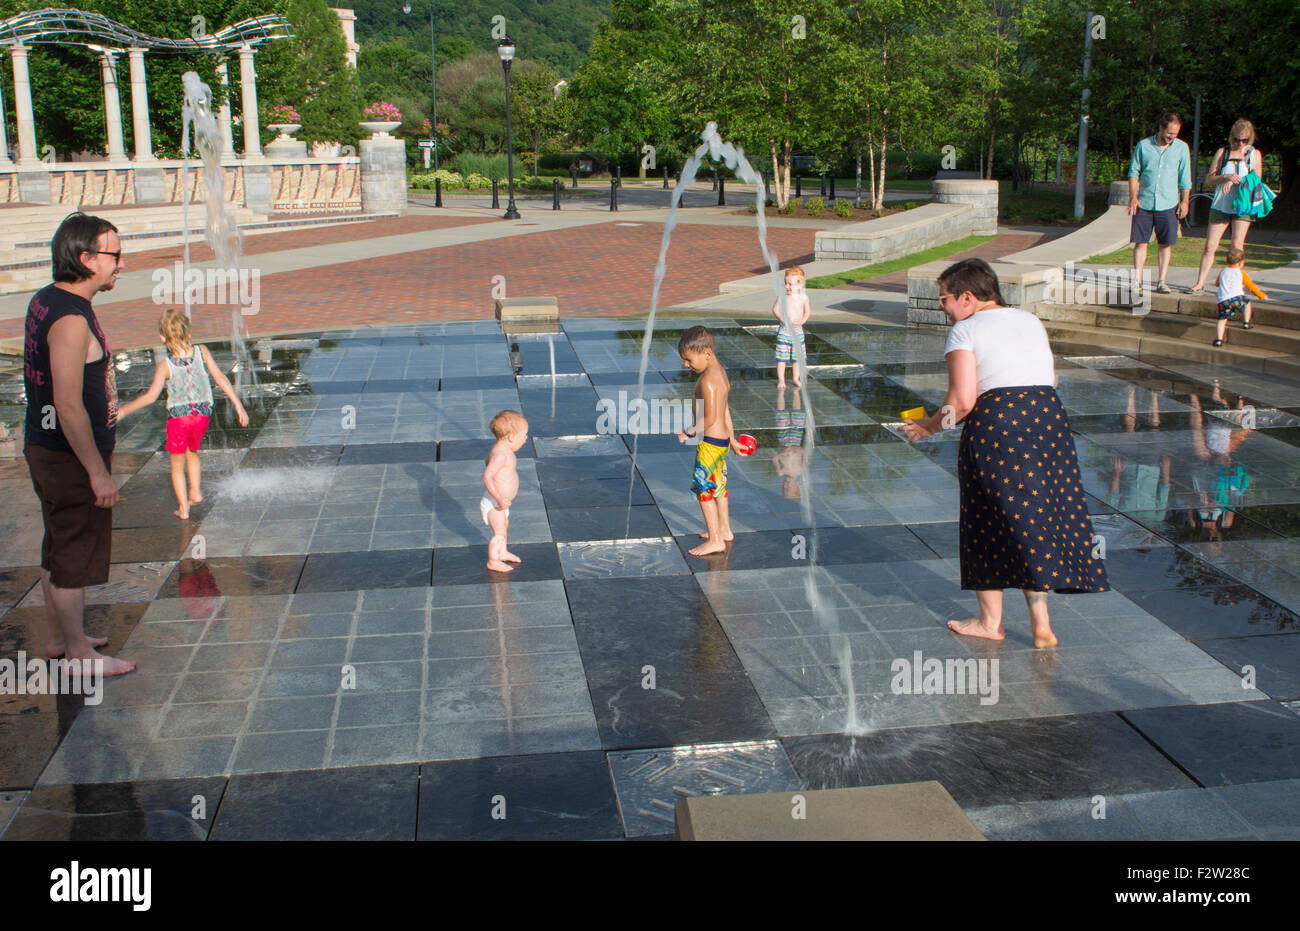 Asheville North Carolina Pack Square with children playing in fountains in park - Stock Image